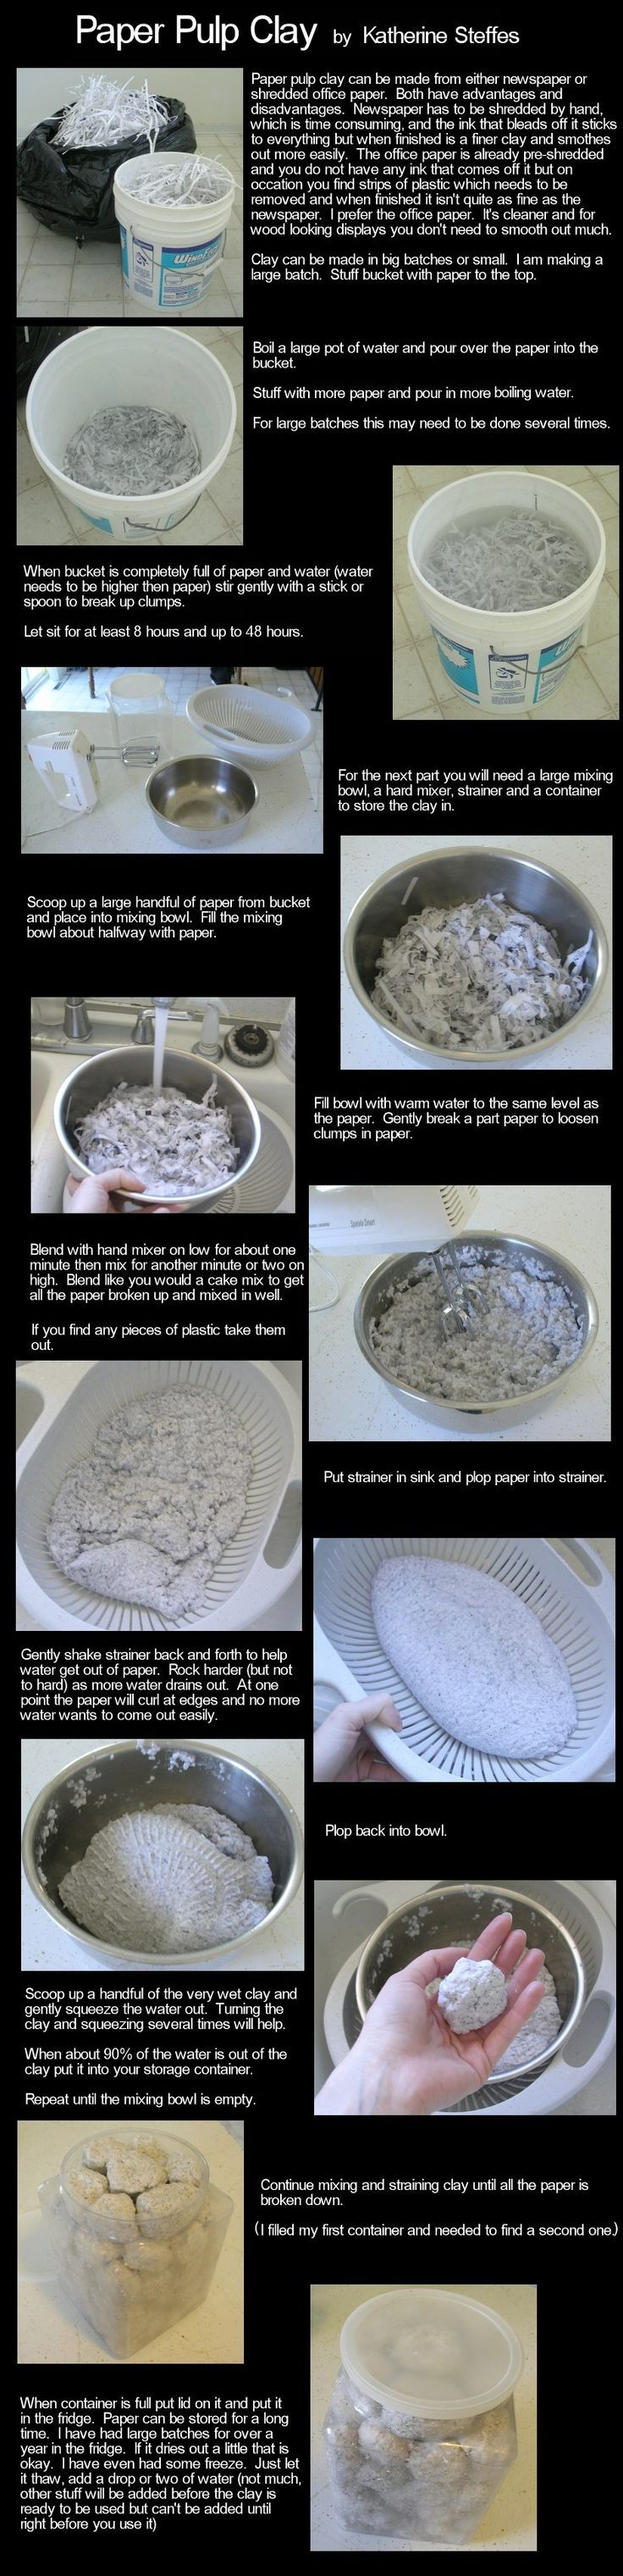 http://www.enchantedbeings.com/tutorials/paperpulpcombo1.jpg paper clay using either office shred or newspaper shred and water. Has to soak for couple of days.: